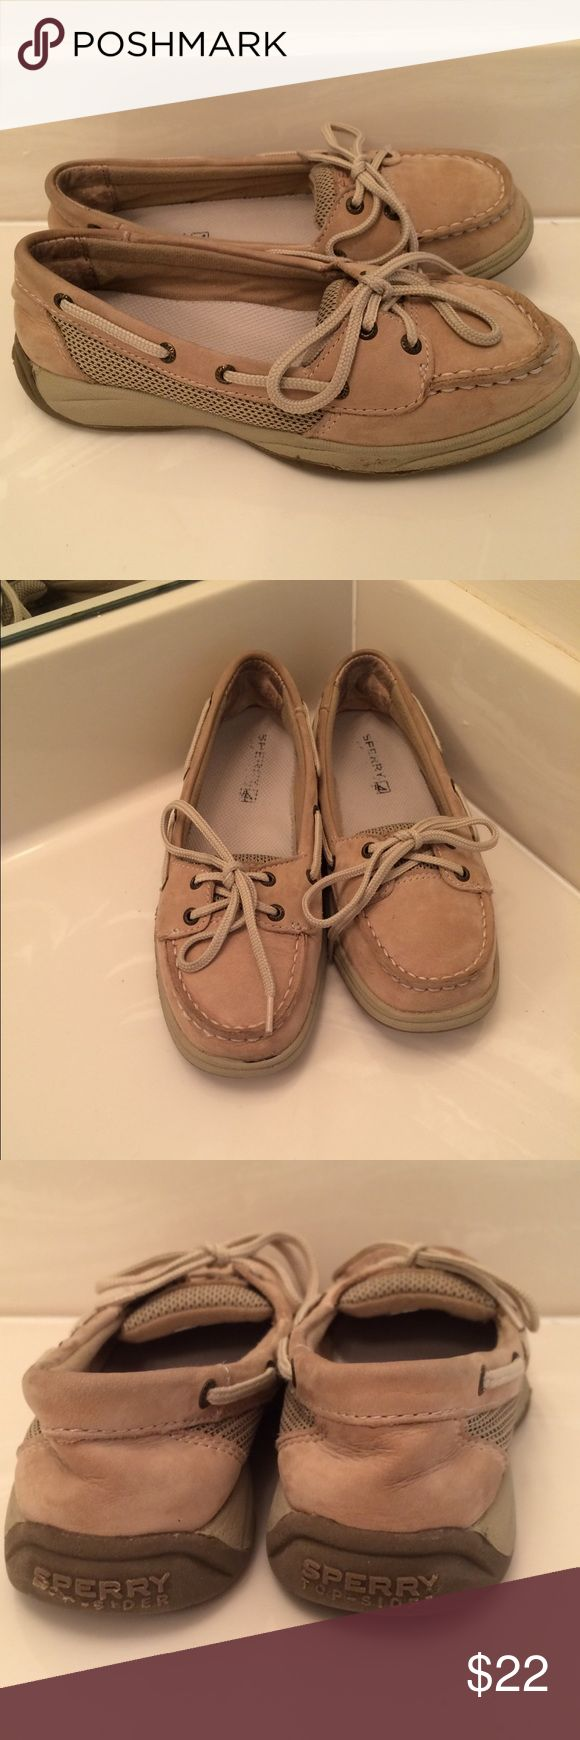 Sperry Girls Size 2  Shoes   Sperry Girls Size 2  Shoes. Cute Sperrys for school or everyday wear. Hear would be perfect for back to school. Some wear but still have a lot of life left Sperry Top-Sider Shoes Moccasins